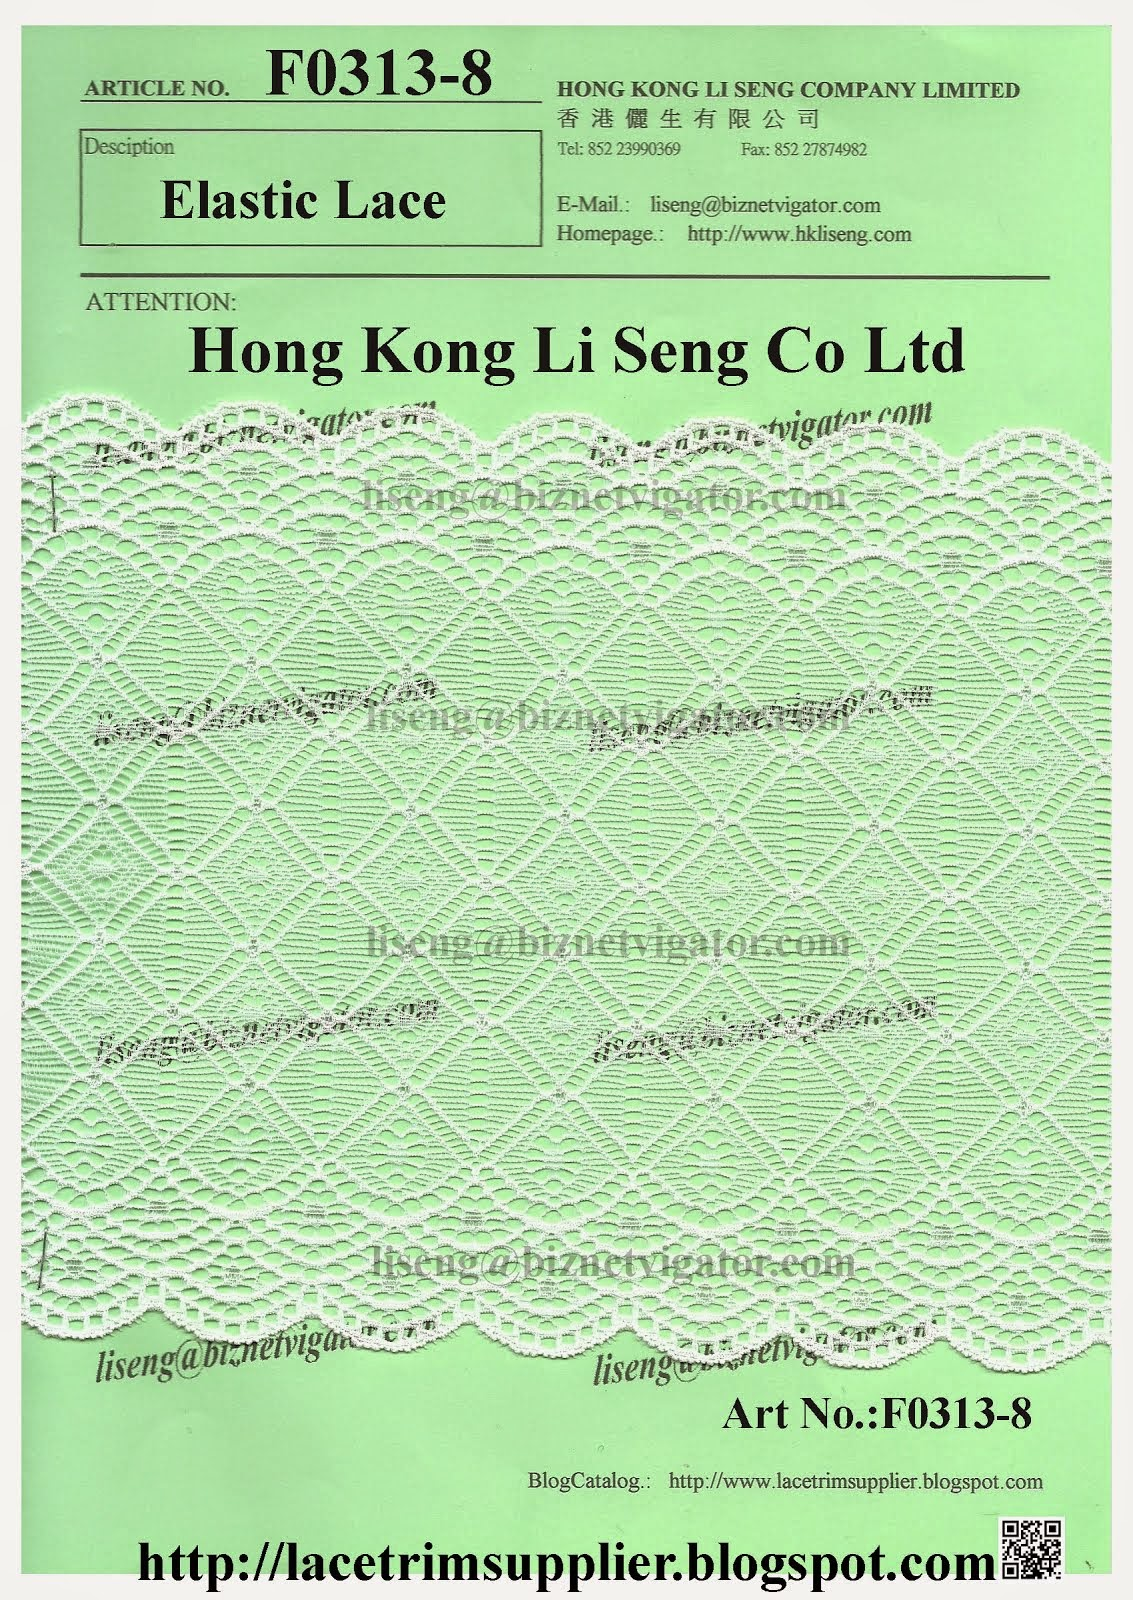 New Elastic Lace Pattern - Hong Kong Li Seng Co Ltd